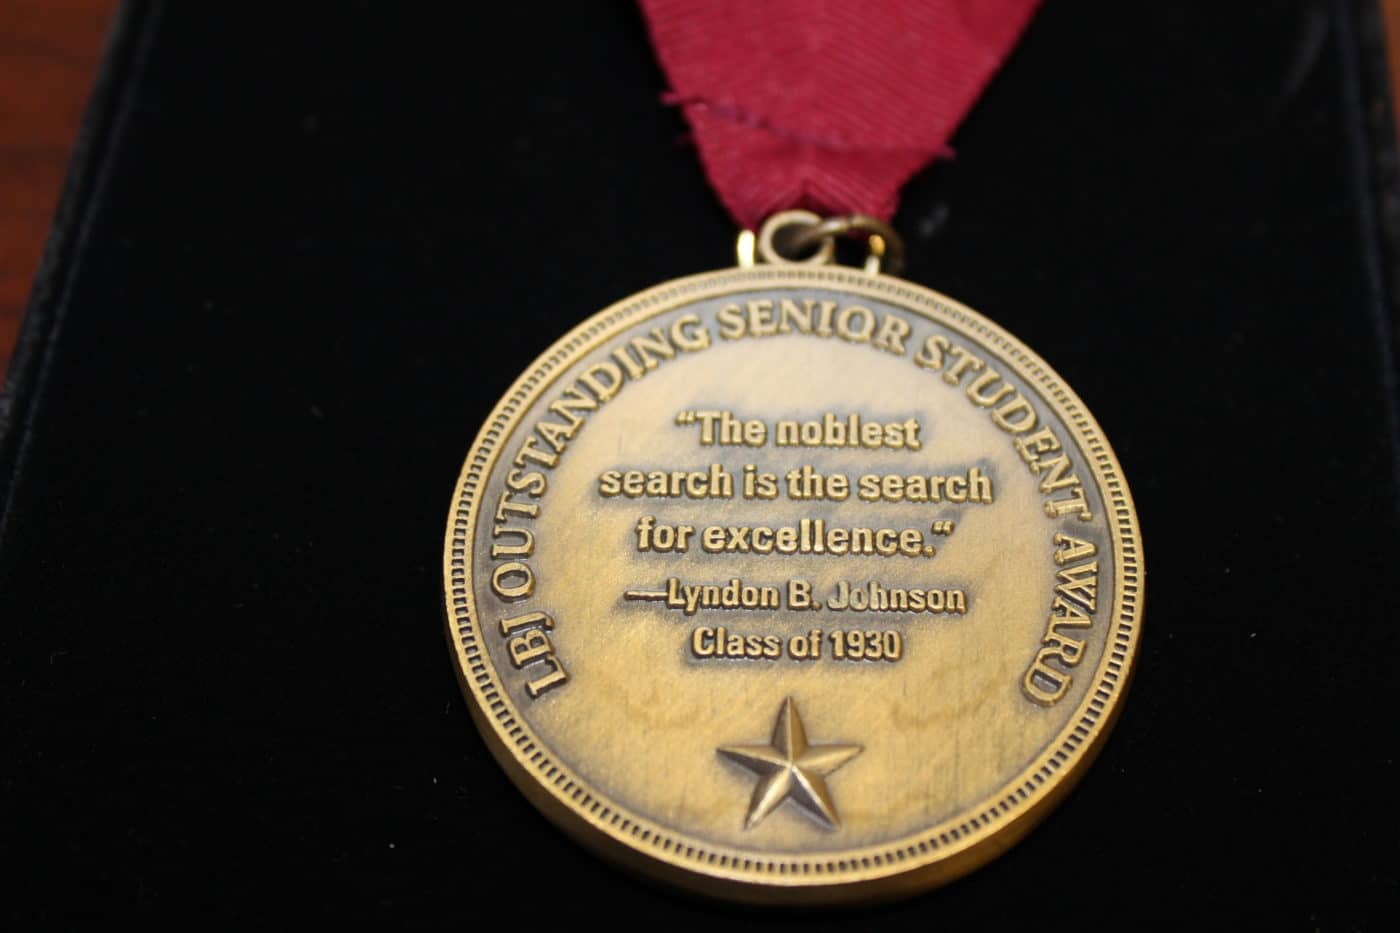 LBJ Distinguished Senior Award Medal